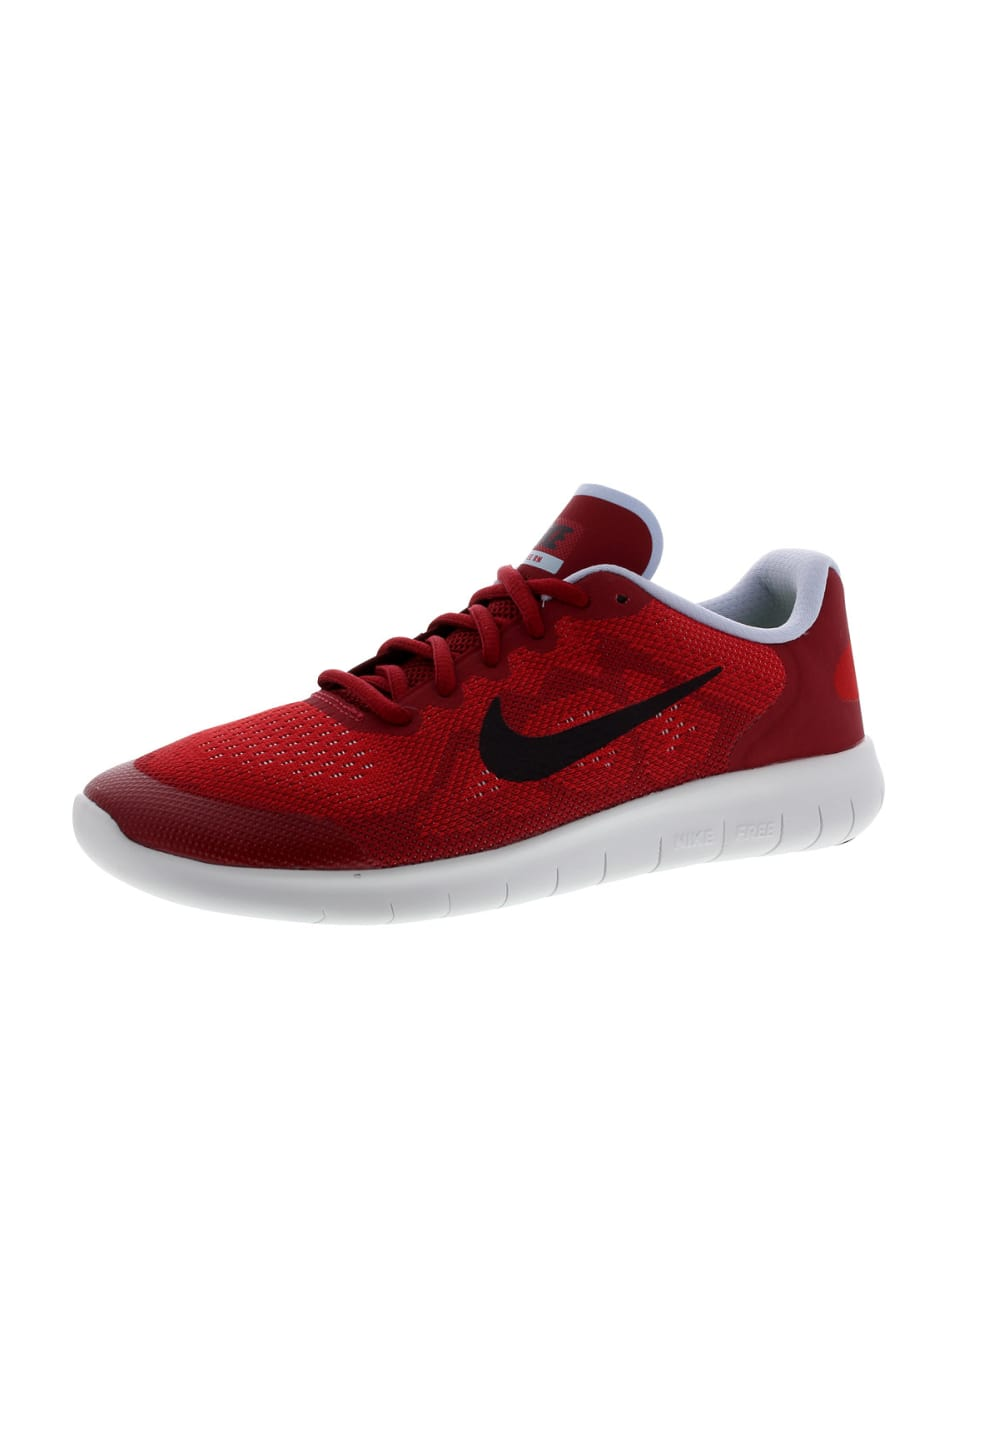 huge selection of d23b2 76c0a Next. Nike. Free RN 2017 GS Boys - Running shoes